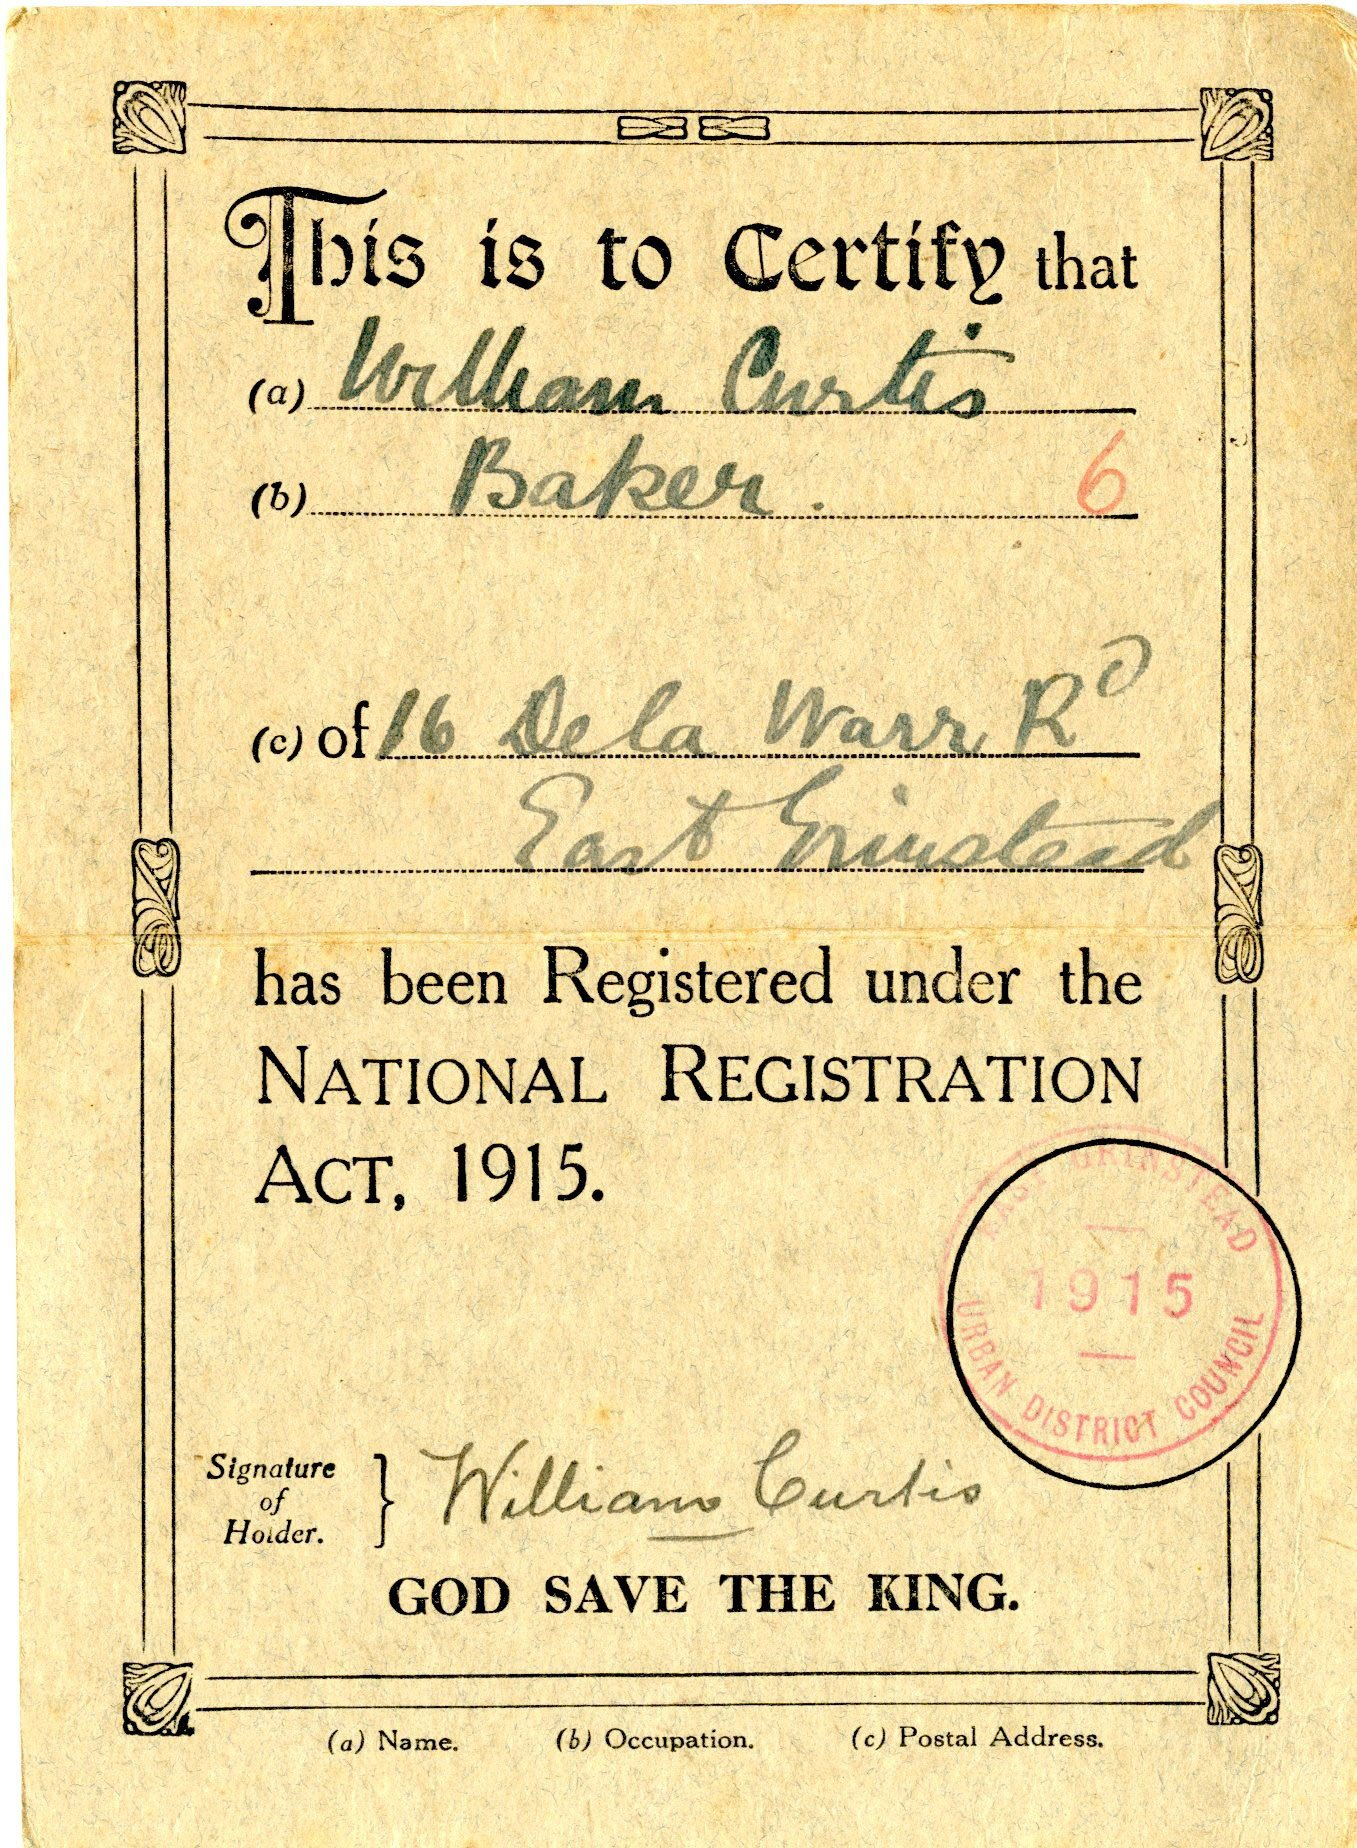 East Grinstead Museum – First World War identity ID card for William Curtis